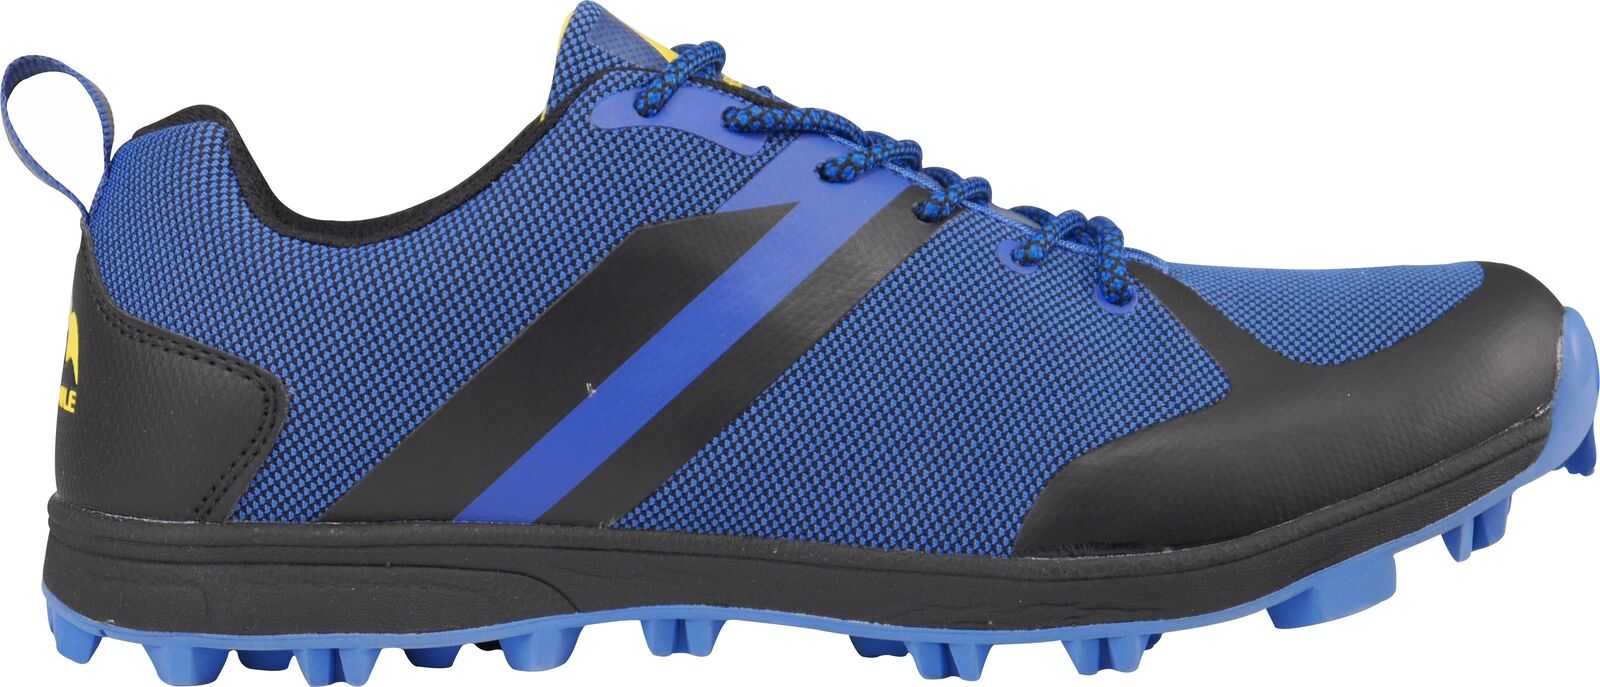 More Mile Cheviot Pace Mens Trail Running zapatos azul Off-Road Racing Trainers